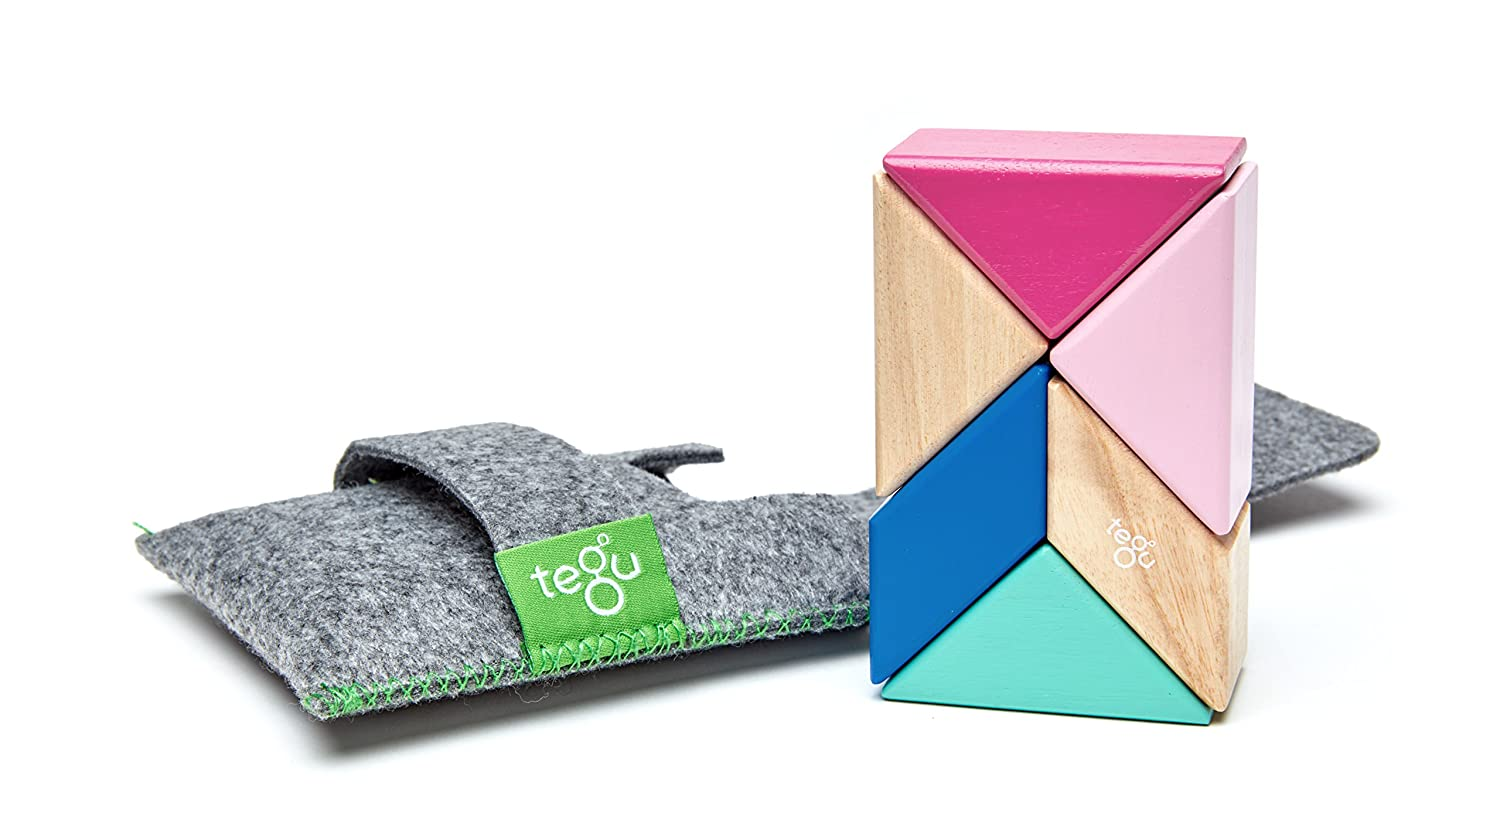 6 Piece Tegu Pocket Pouch Prism Magnetic Wooden Block Set, Nelson P-11-048-SJG